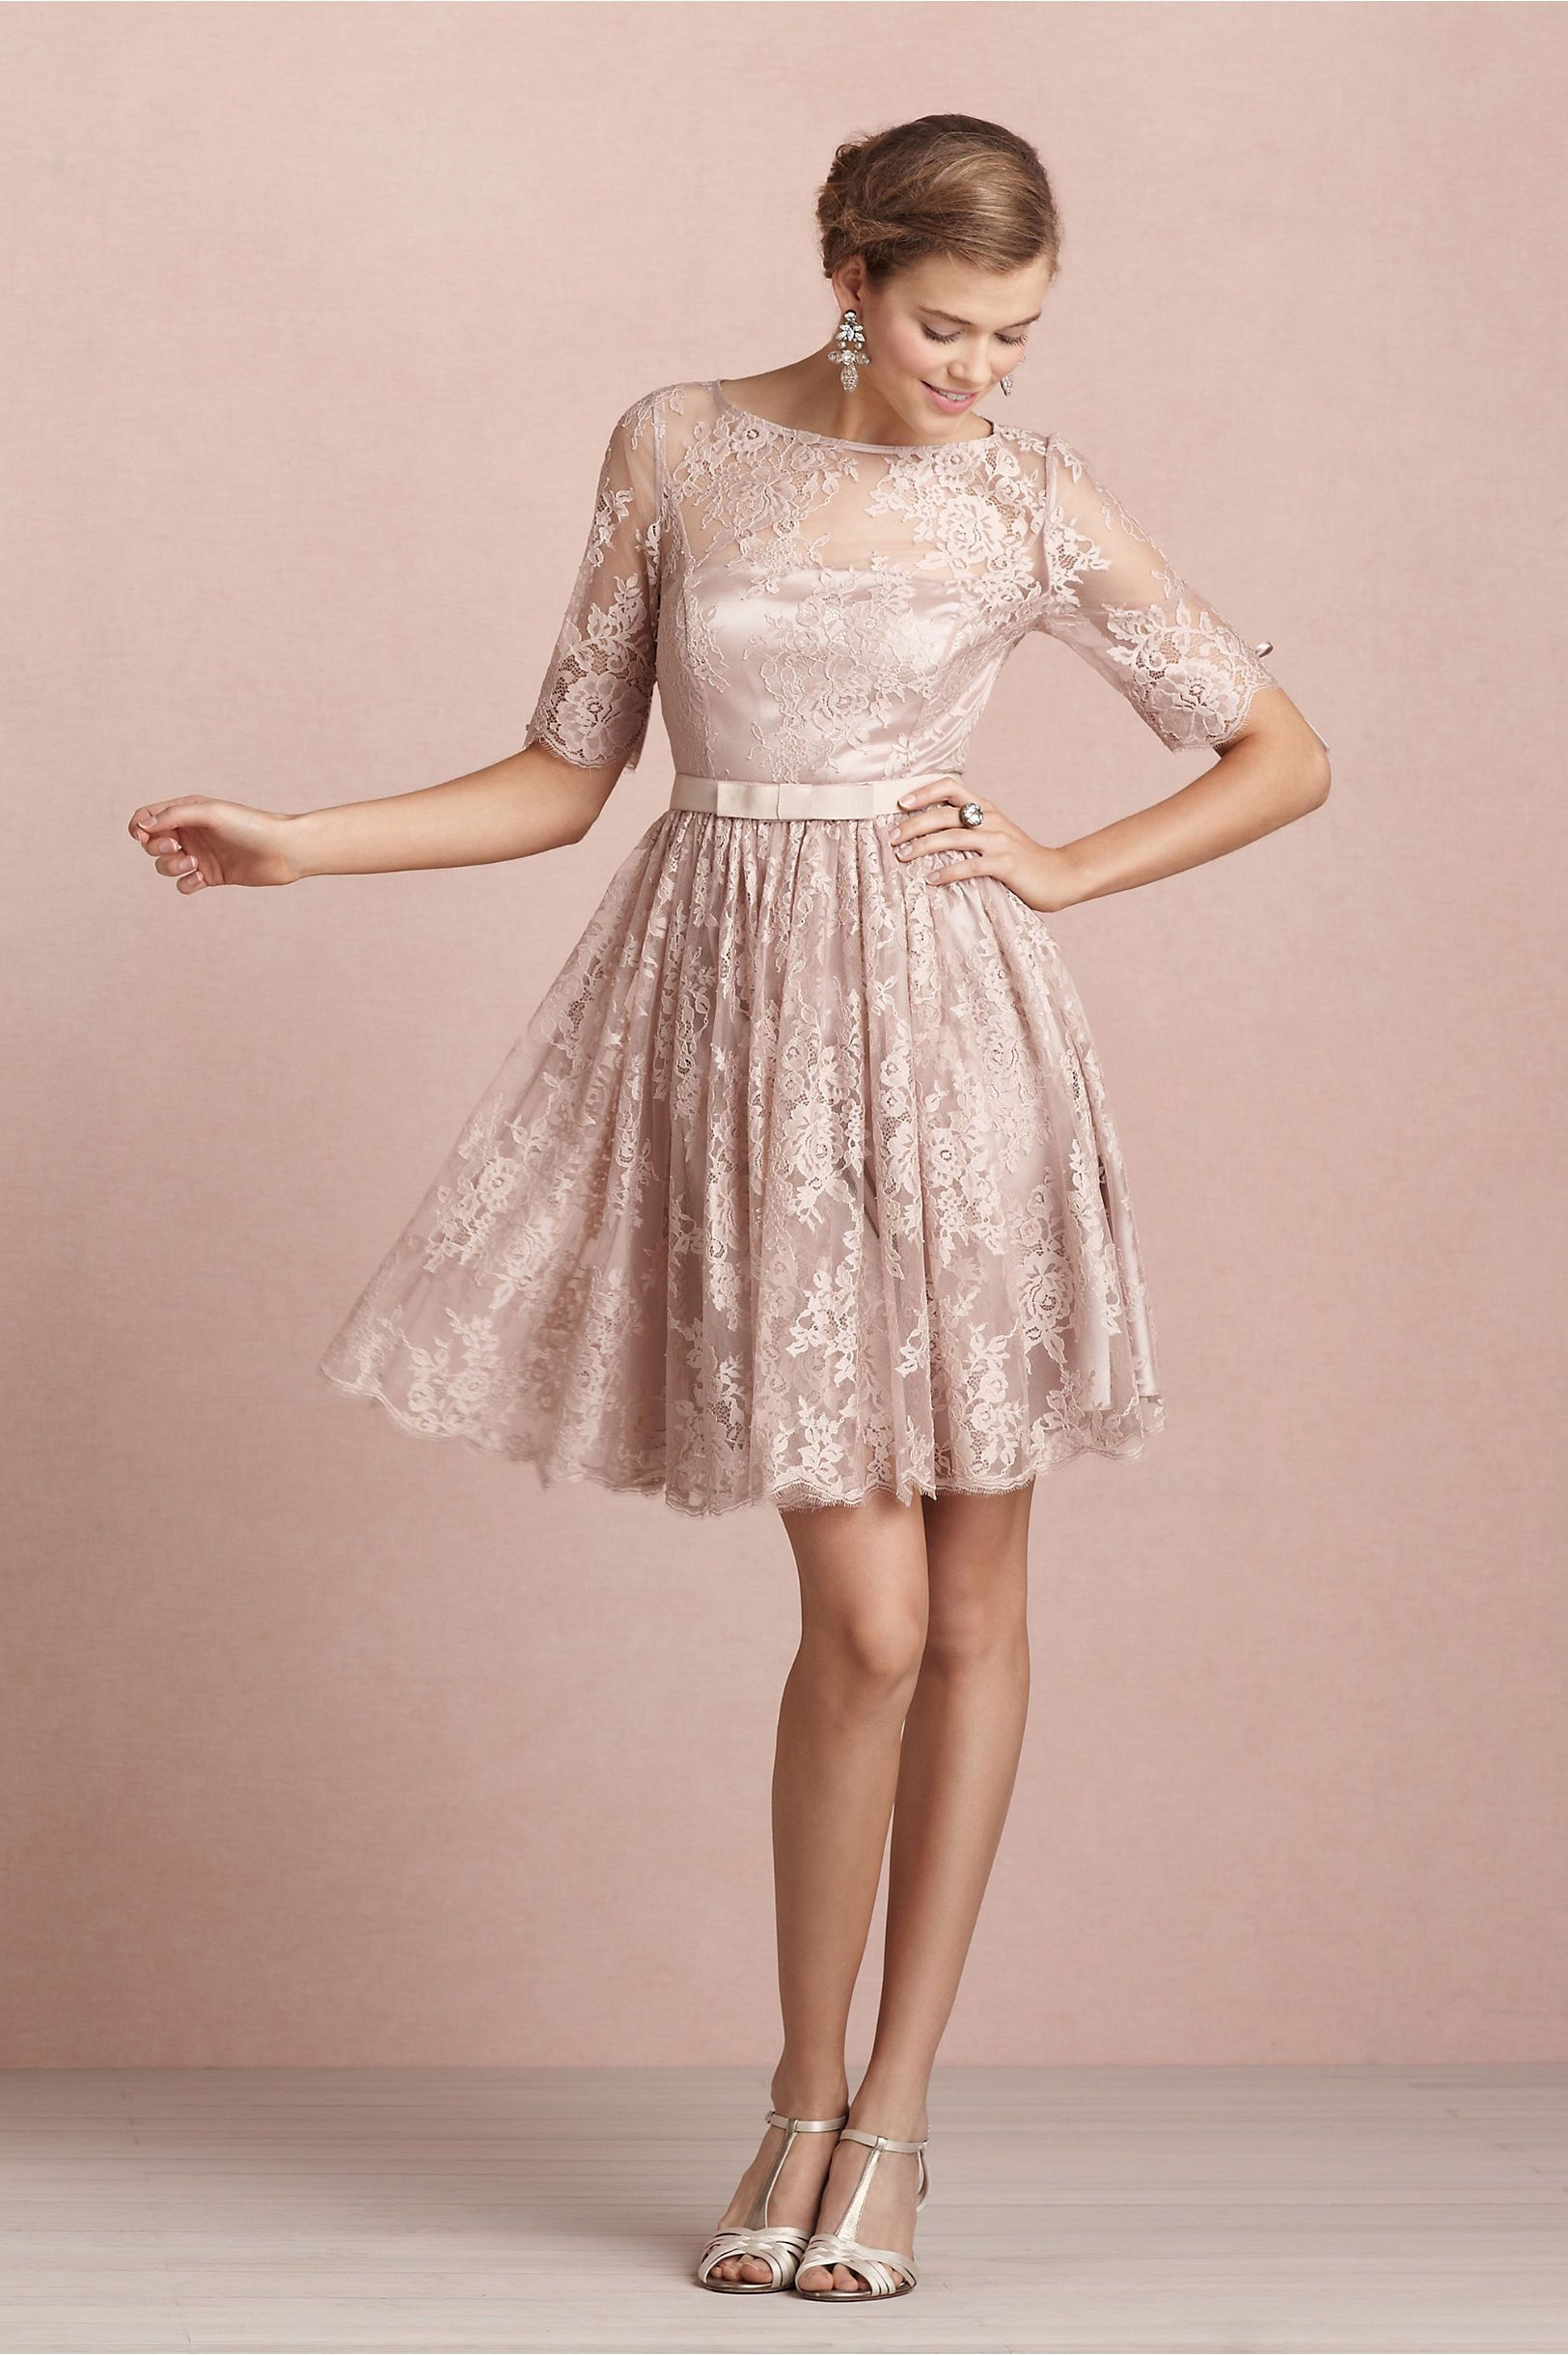 Tea Rose Dress in SHOP Bridesmaids & Partygoers Dresses at BHLDN ...